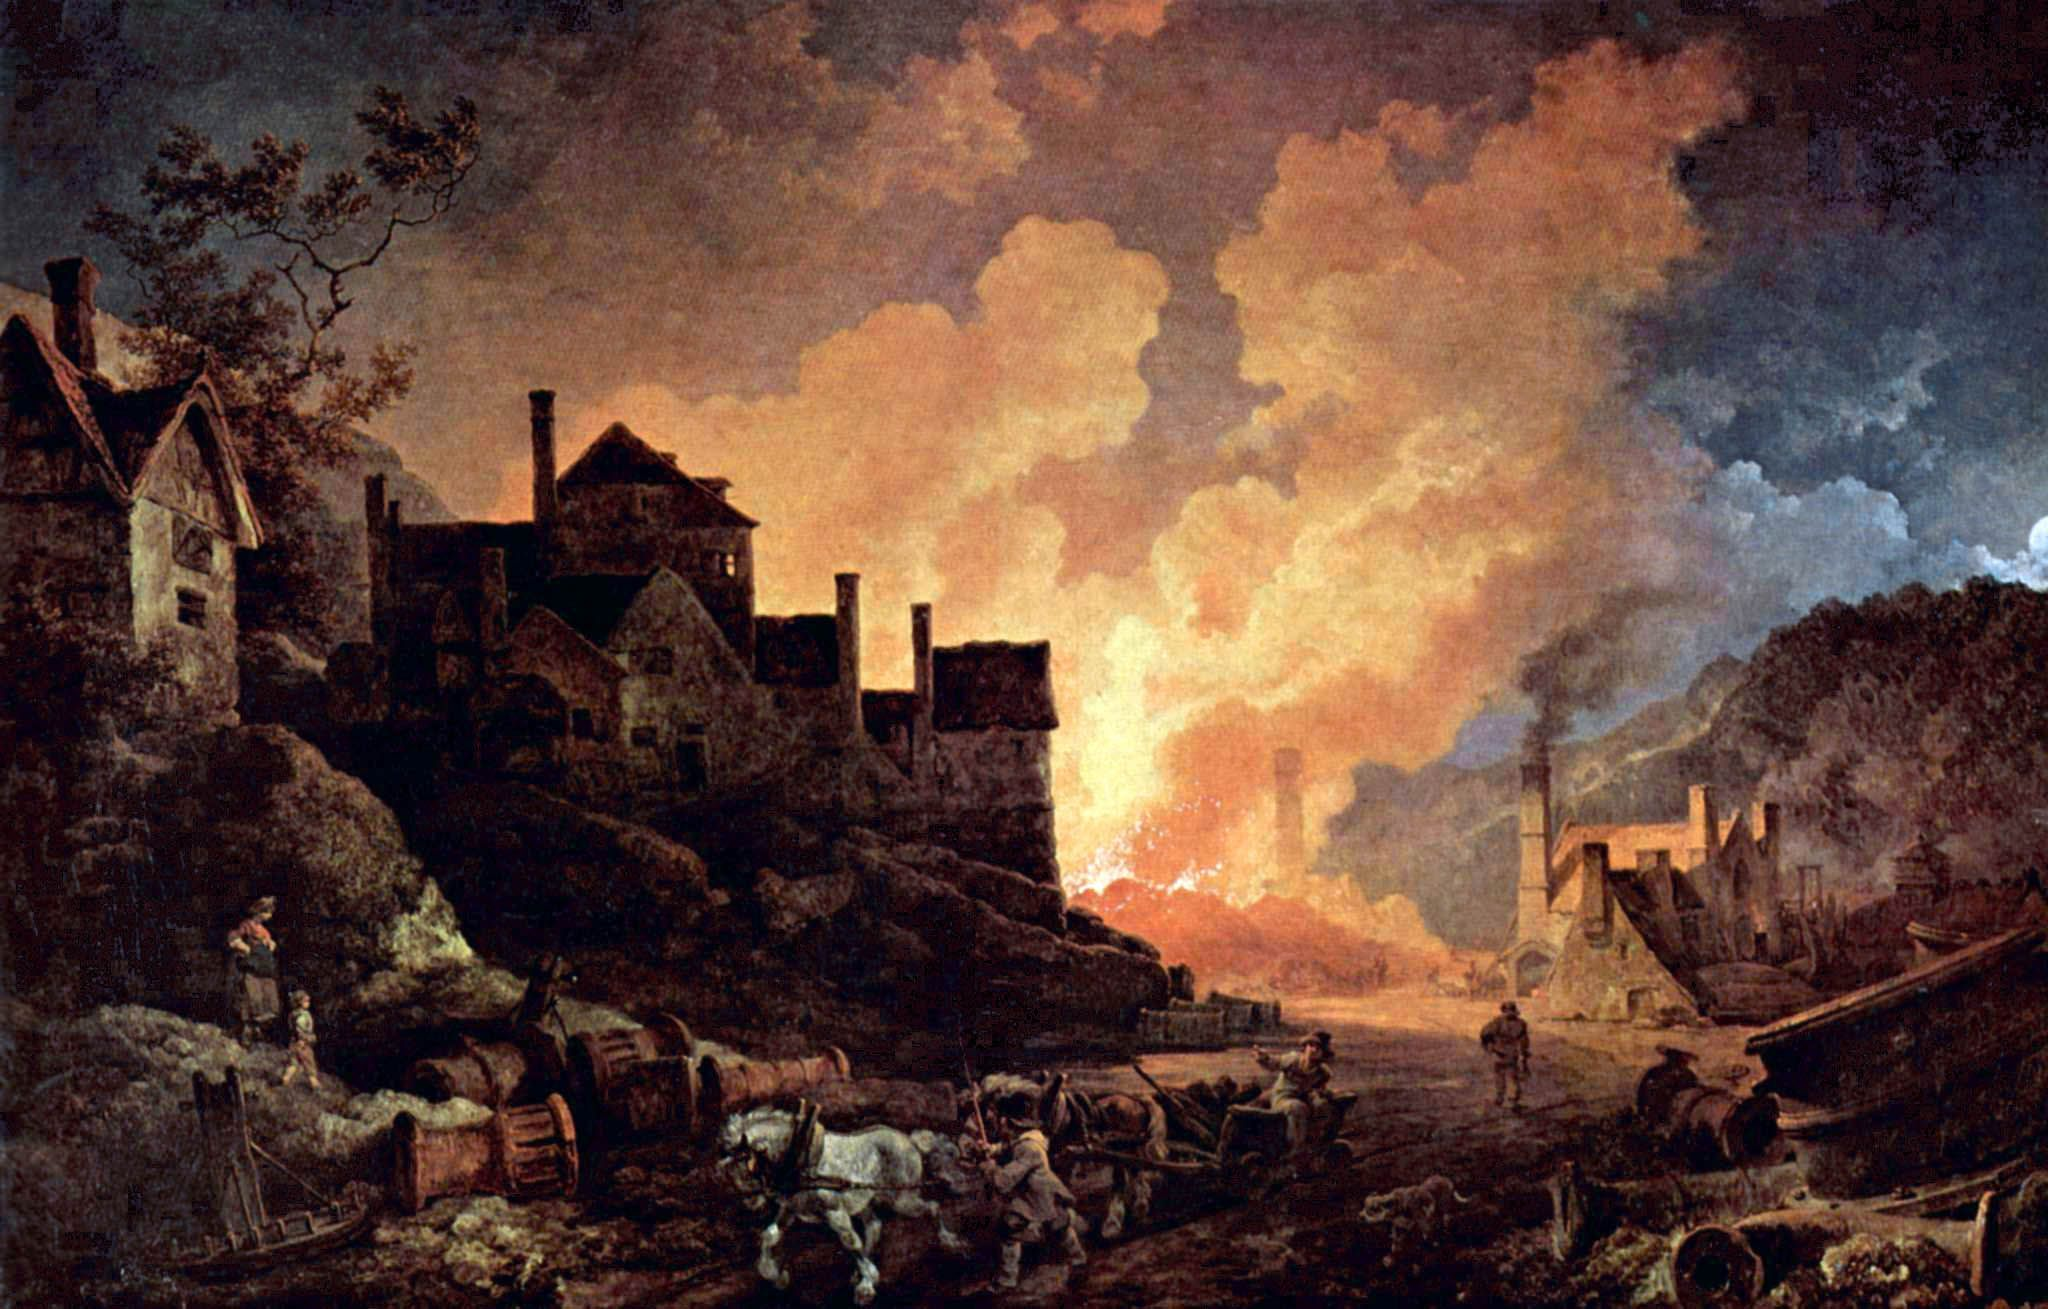 The Industrial Revolution Was A Period From 1750 To 1850 Where